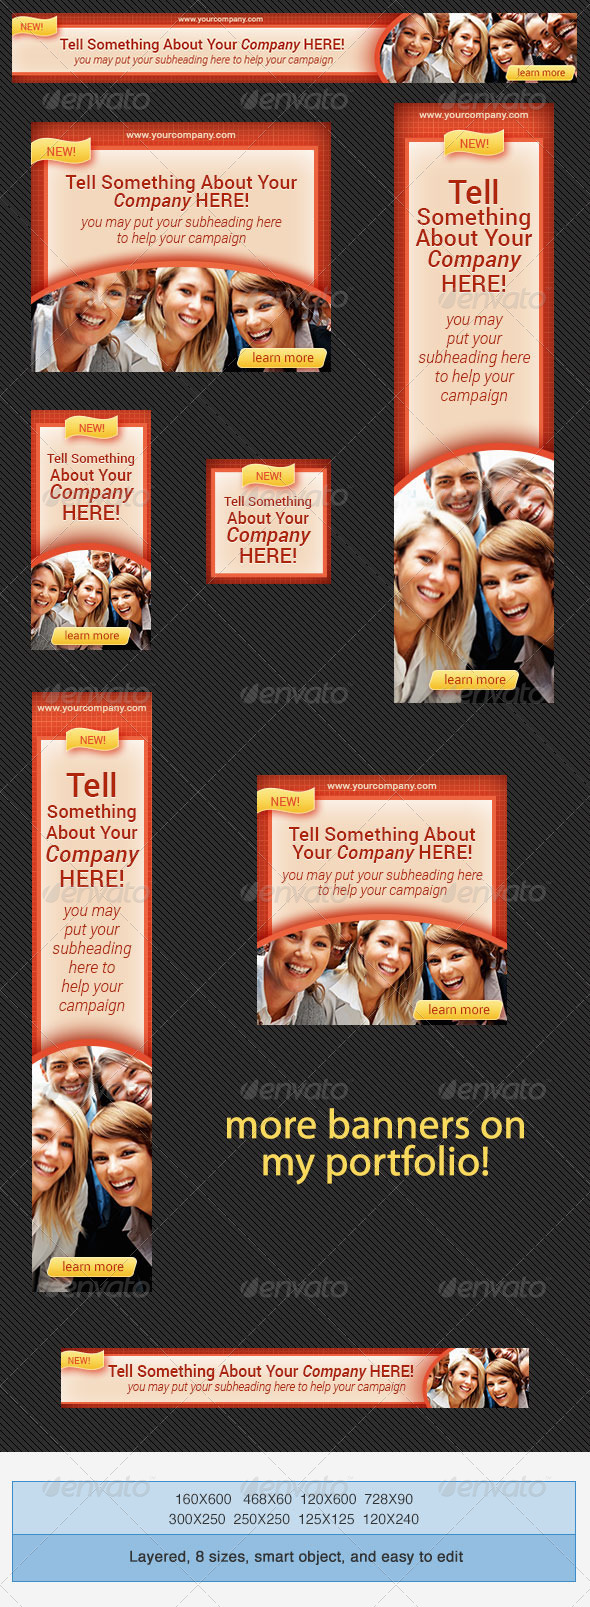 Corporate PSD Banner Ad Template 6 - Banners & Ads Web Elements